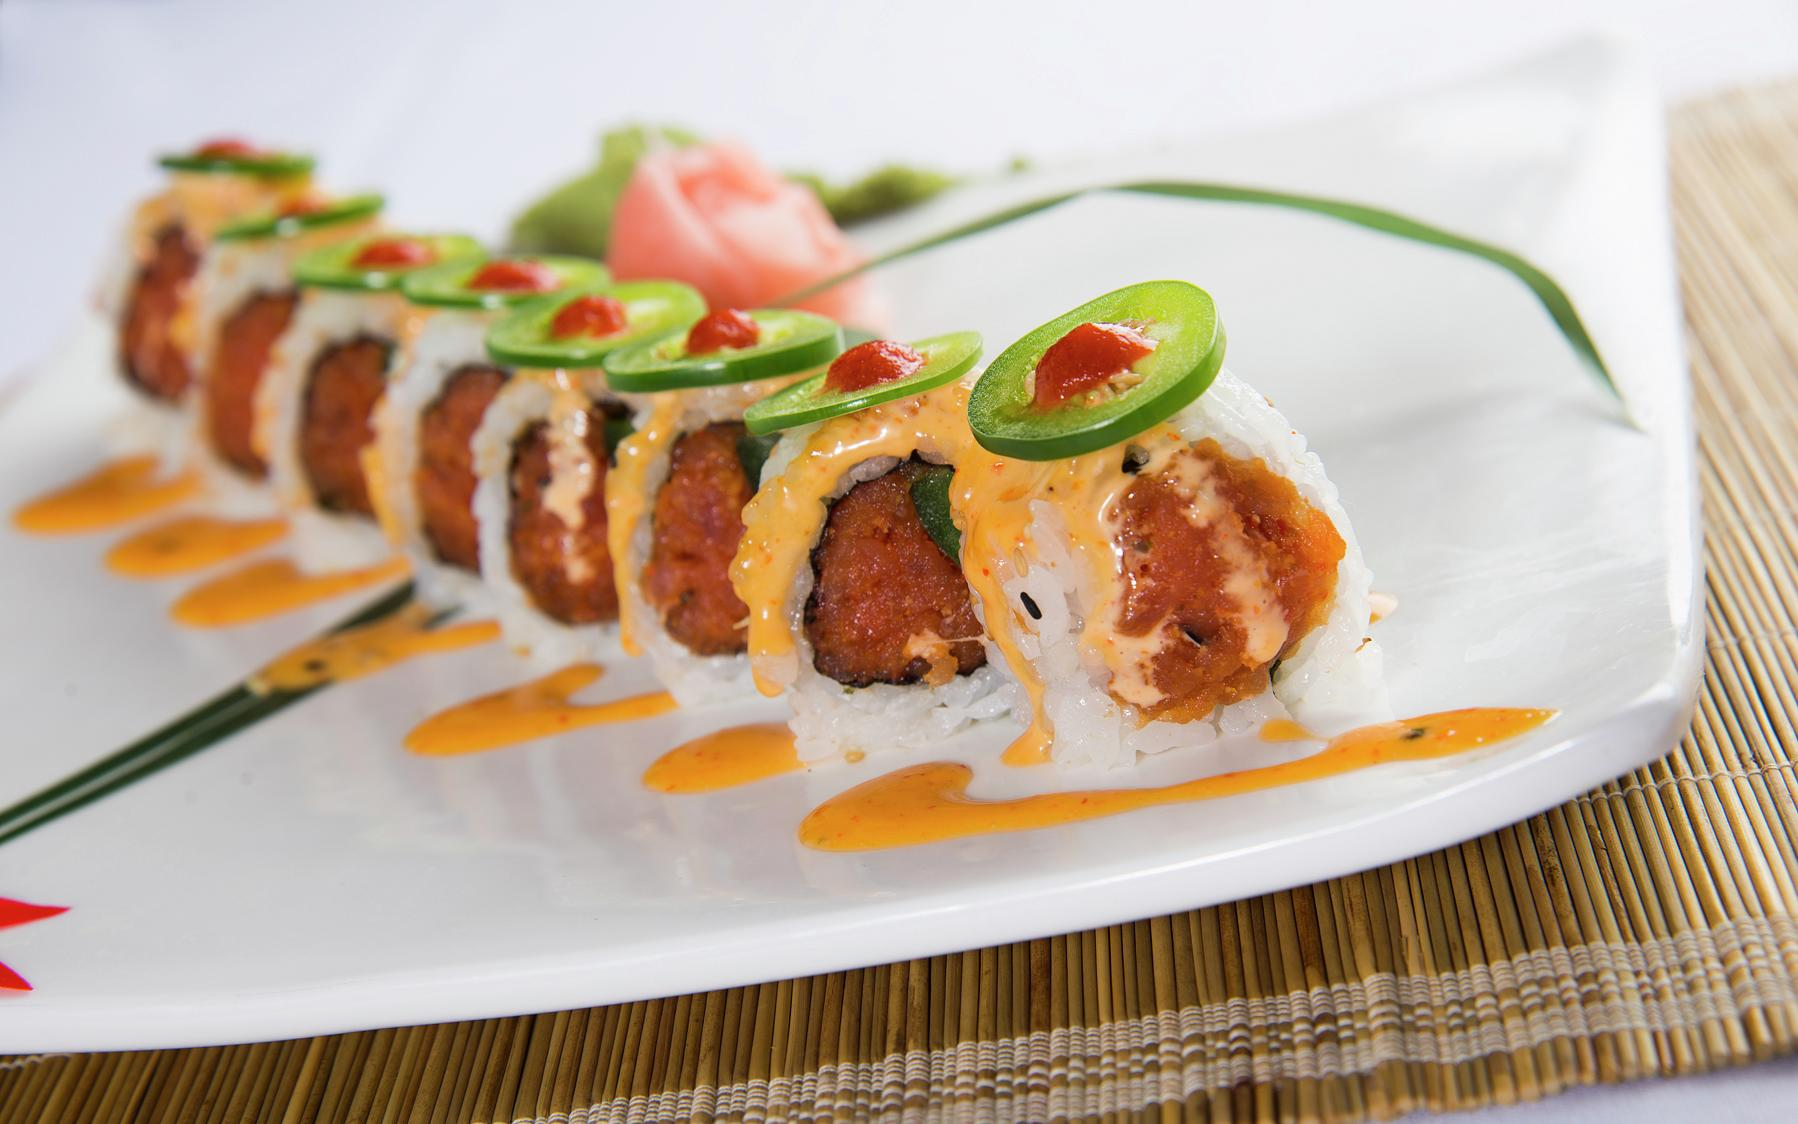 Chin Chin Café & Sushi Bar offers traditional Chinese food, sushi and pan-Asian specialties in a bright and colorful setting.